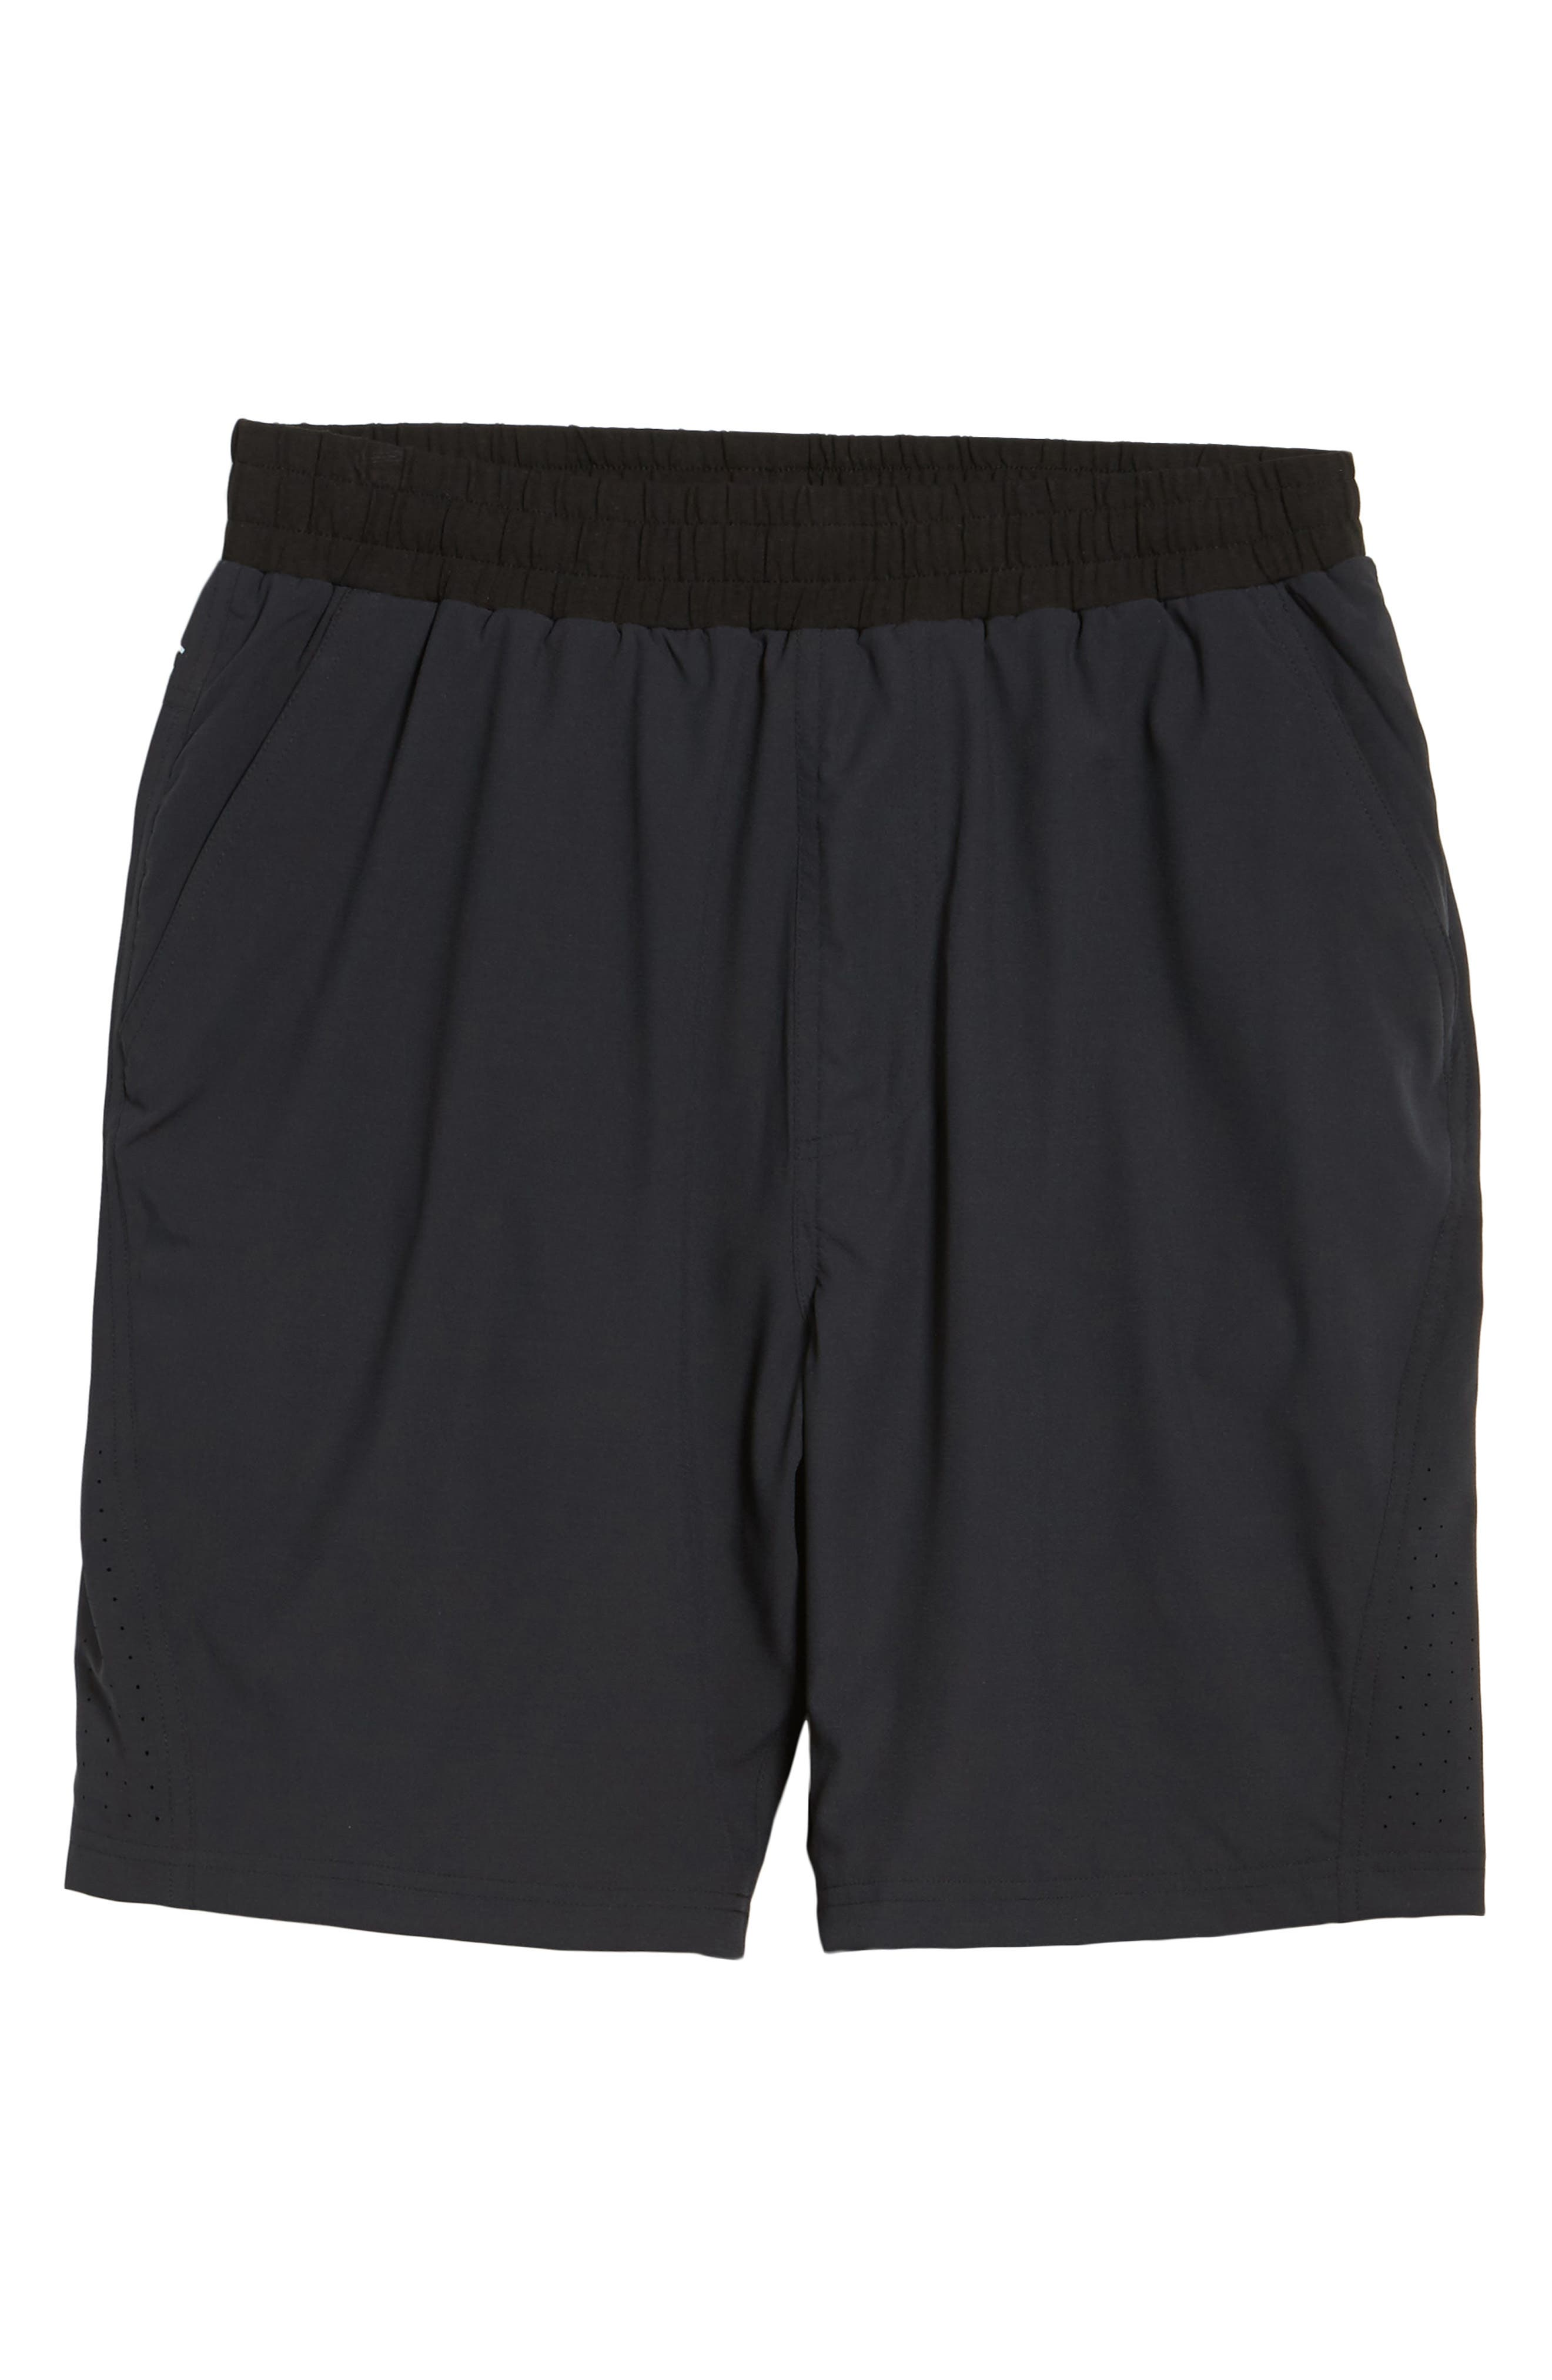 TASC PERFORMANCE, Charge Water Resistant Athletic Shorts, Alternate thumbnail 7, color, BLACK